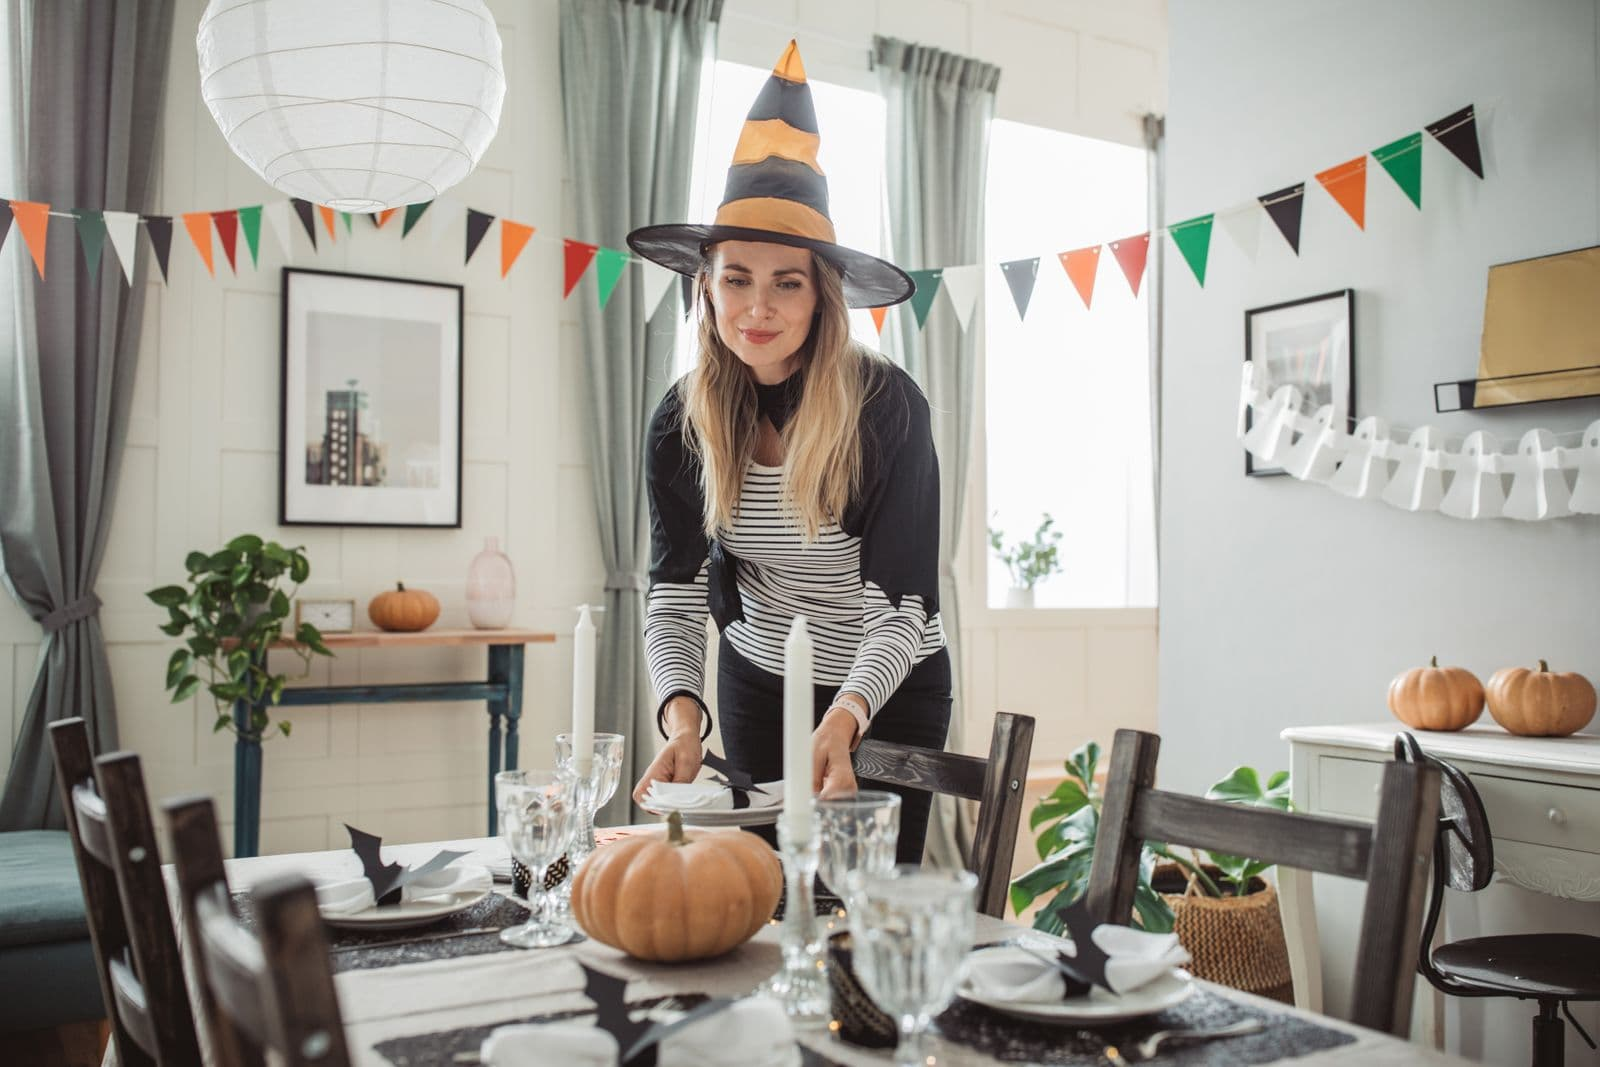 5 Clever Ways to Add Spooktacular Halloween Decorations at Home